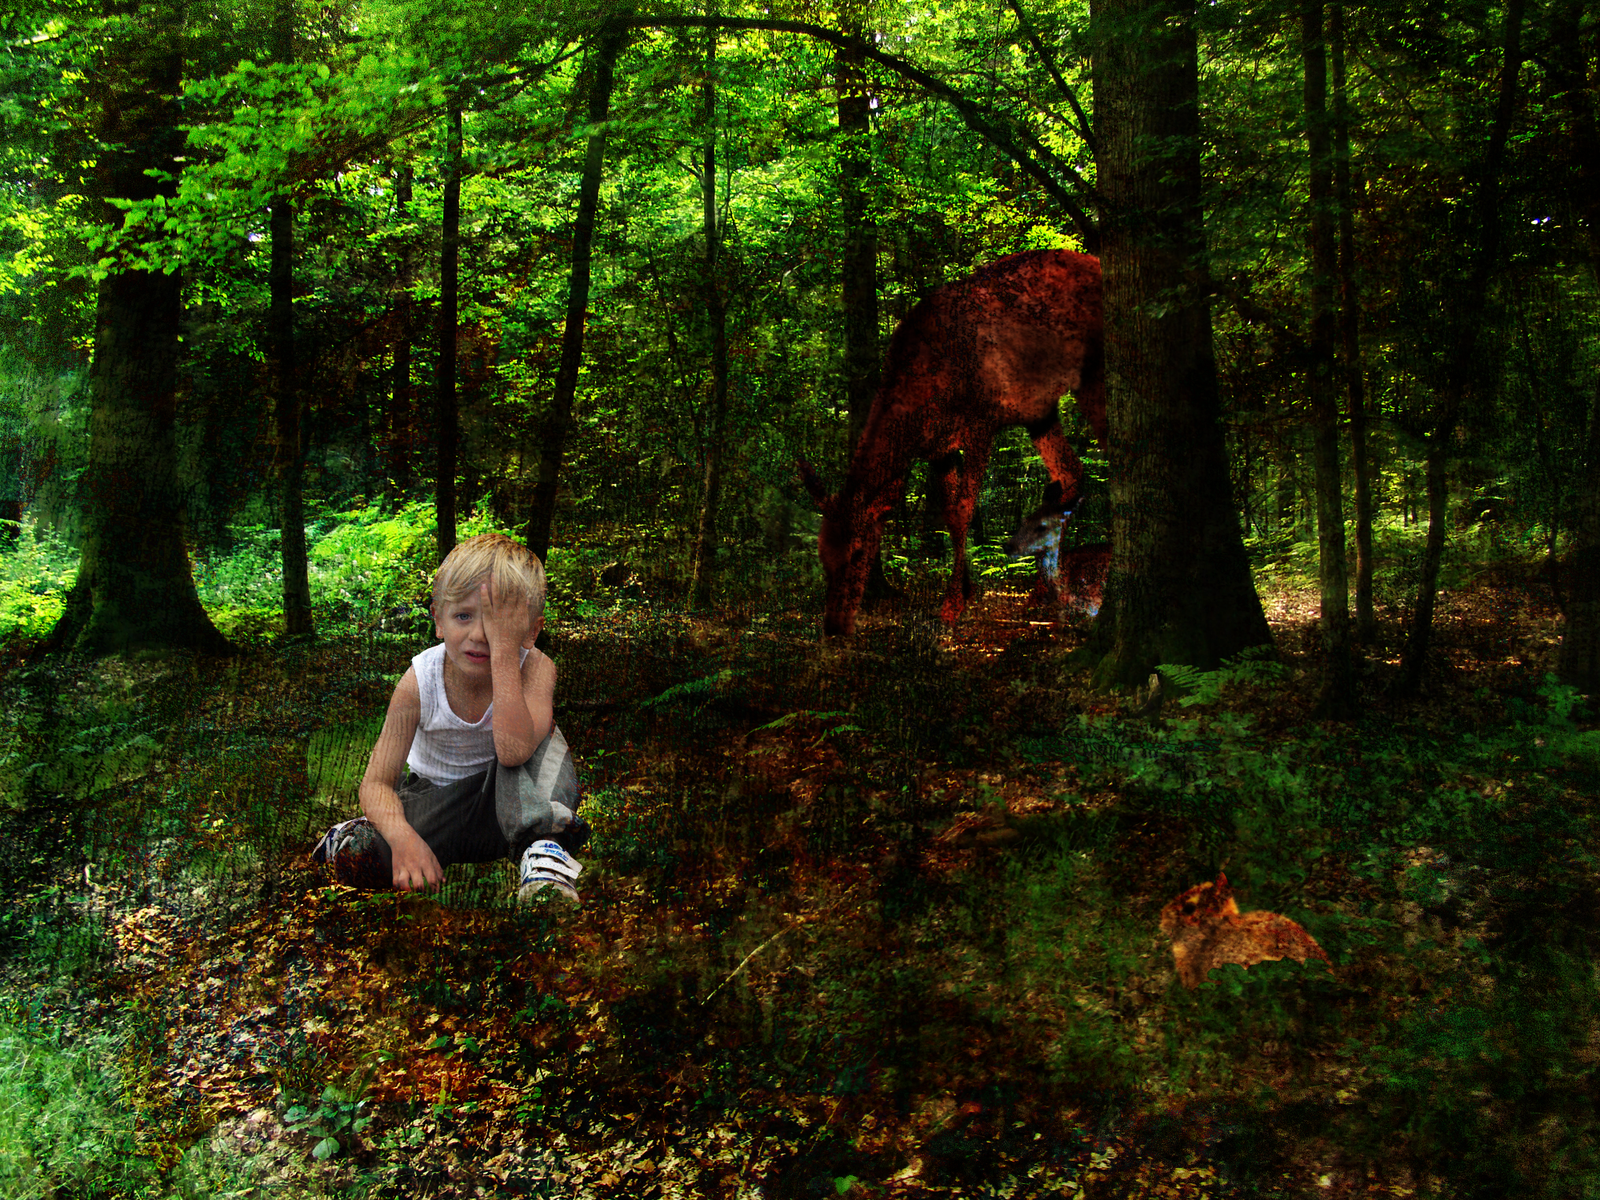 Essay lost in the forest